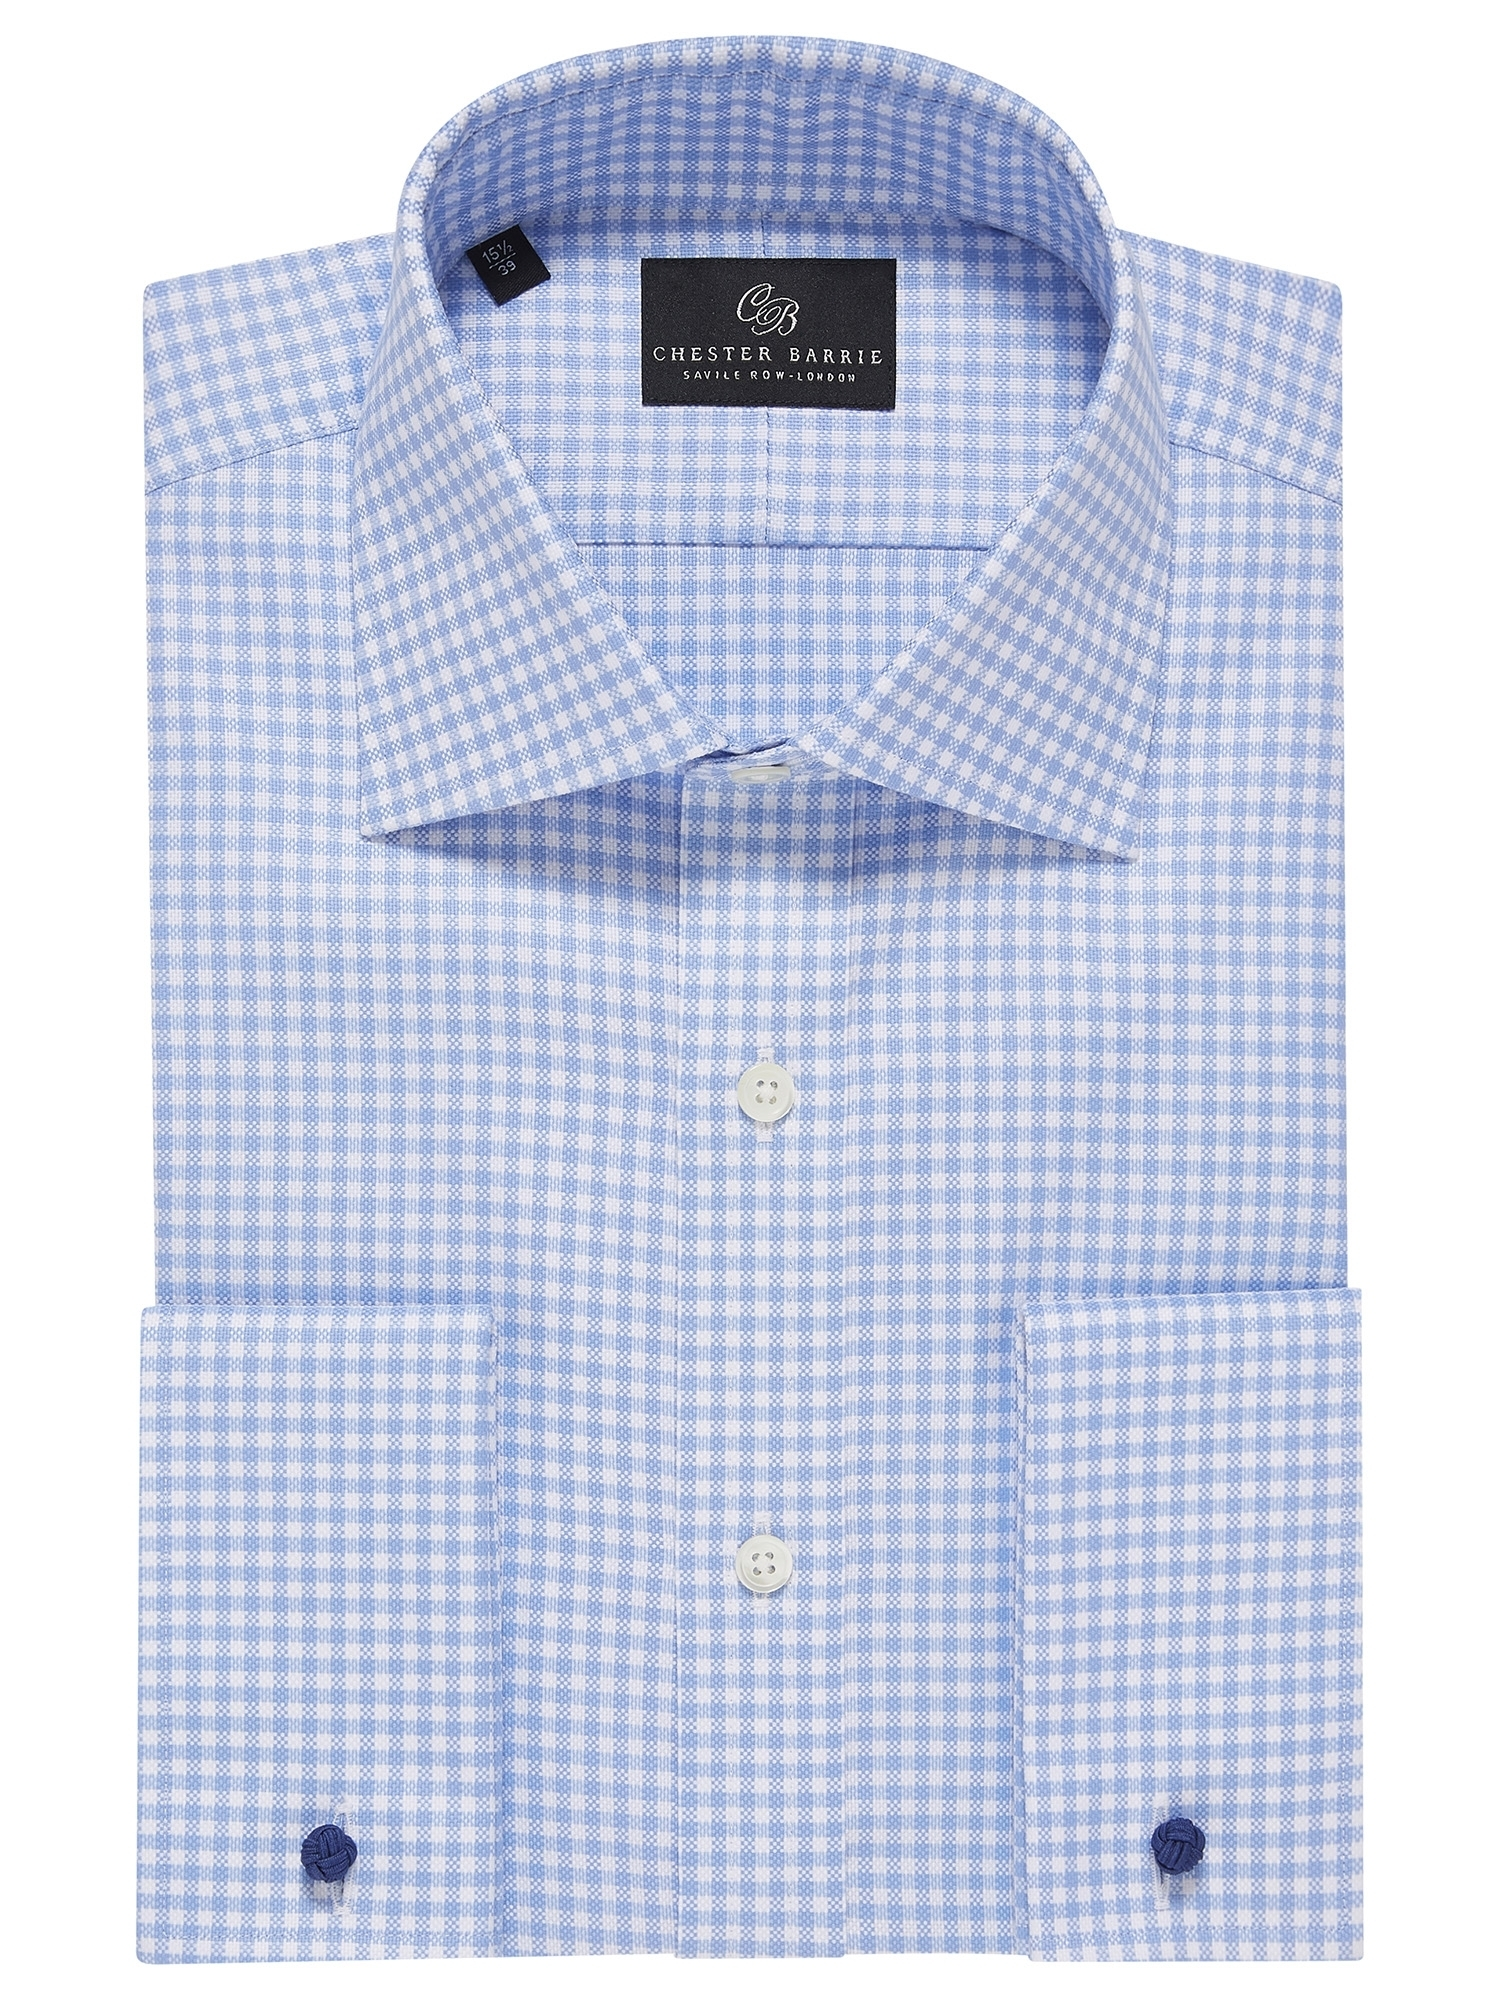 CHESTER BARRIE Oxford Gingham Check Shirt